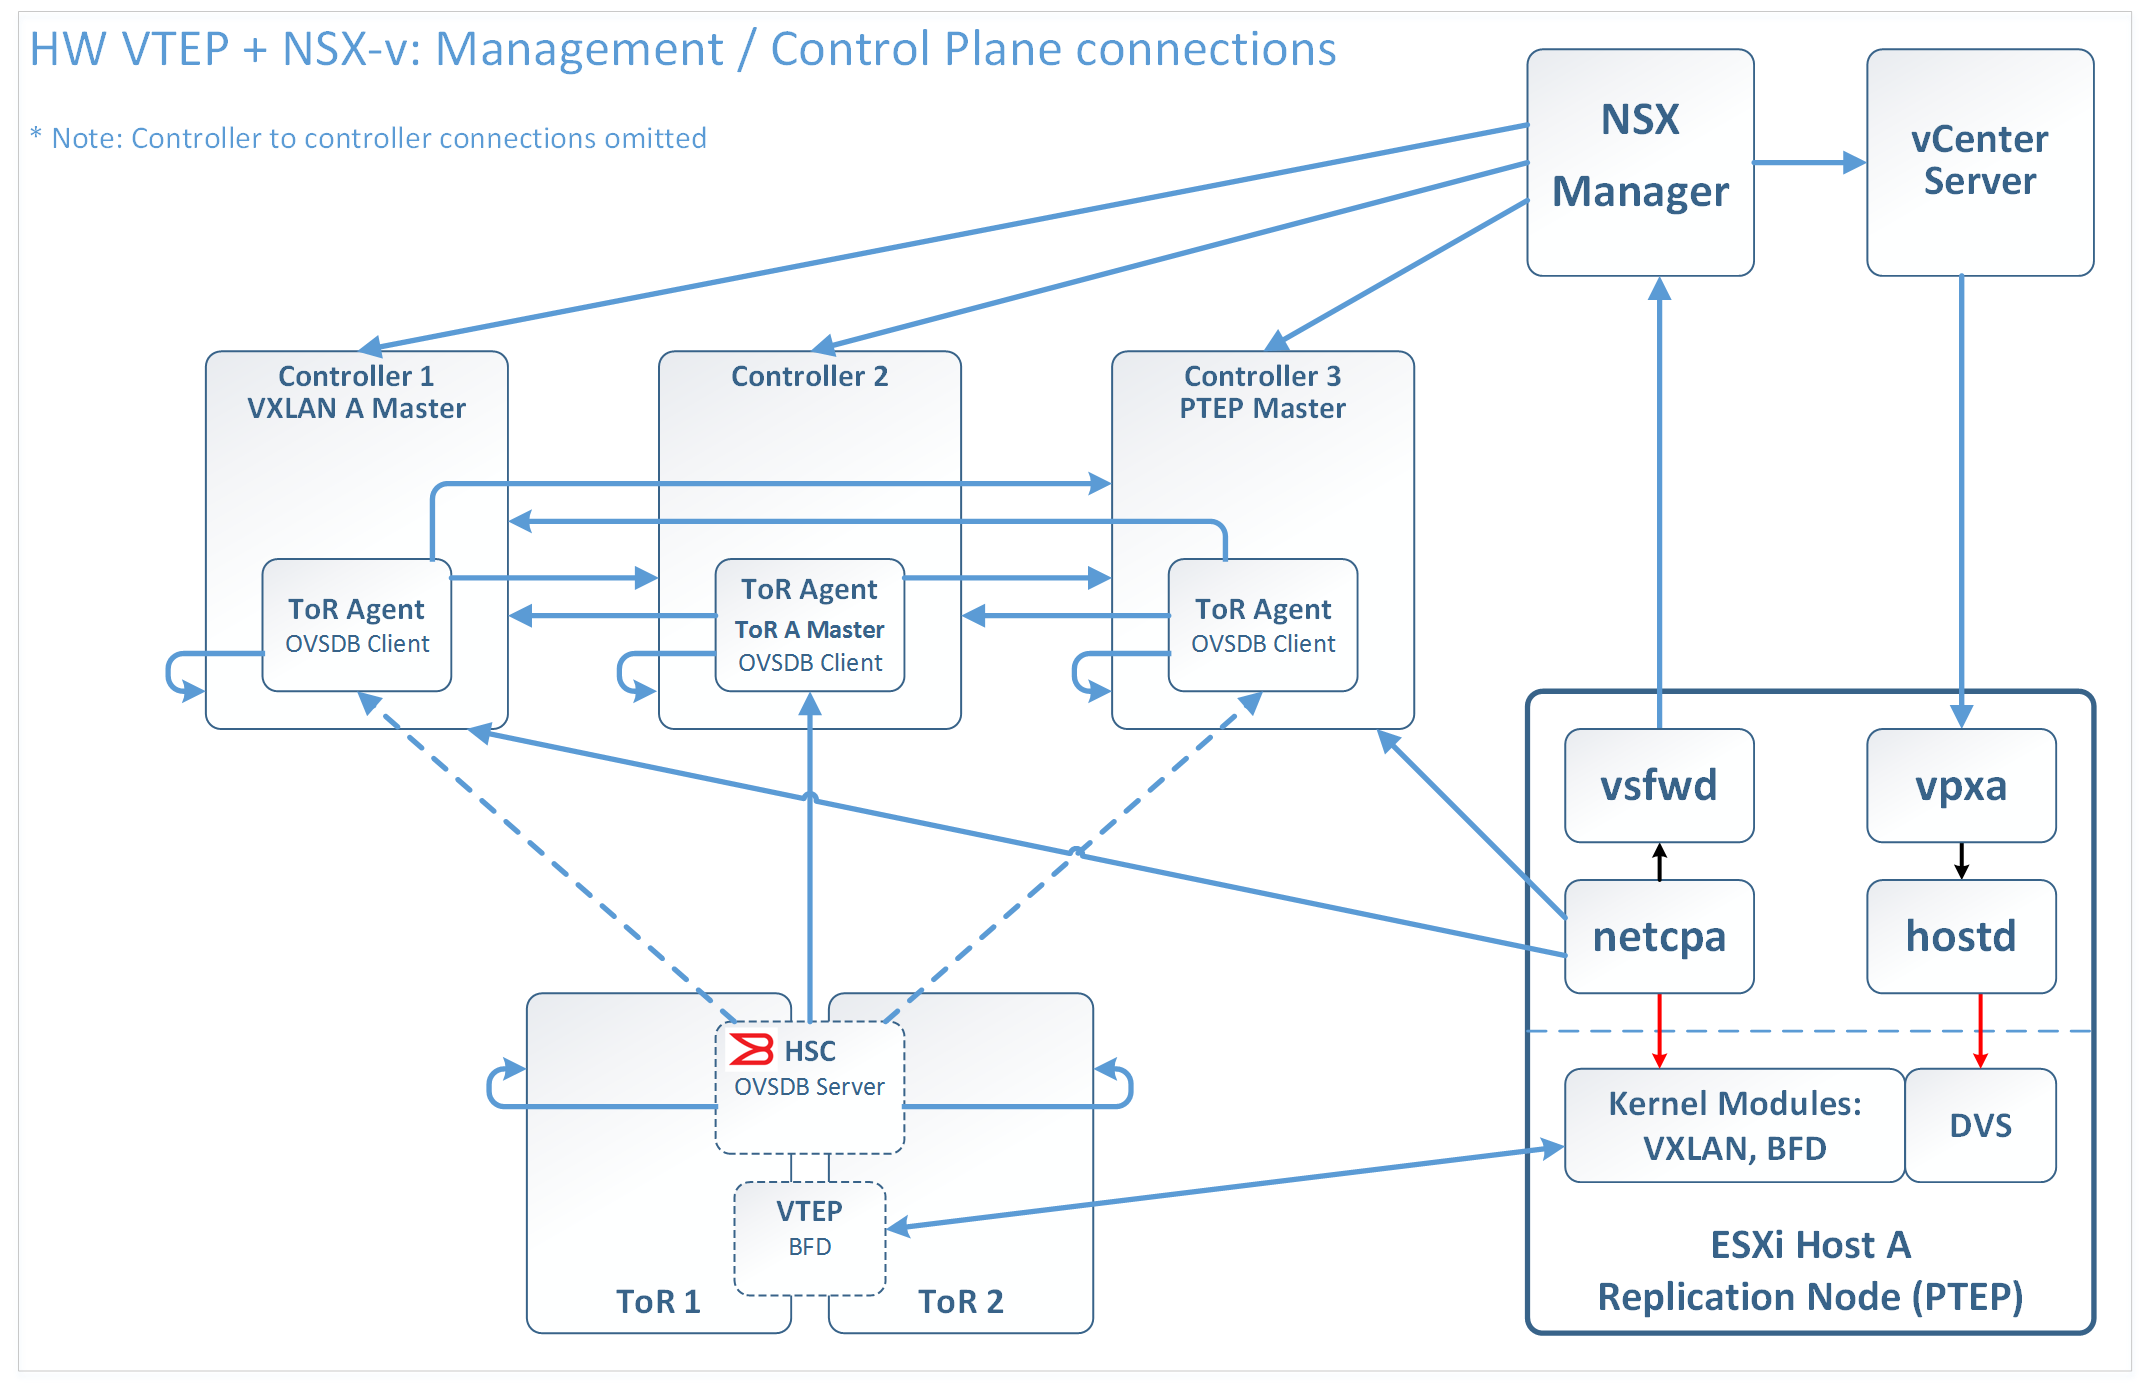 NSX-v with HW VTEP - Management and Control Plane connections